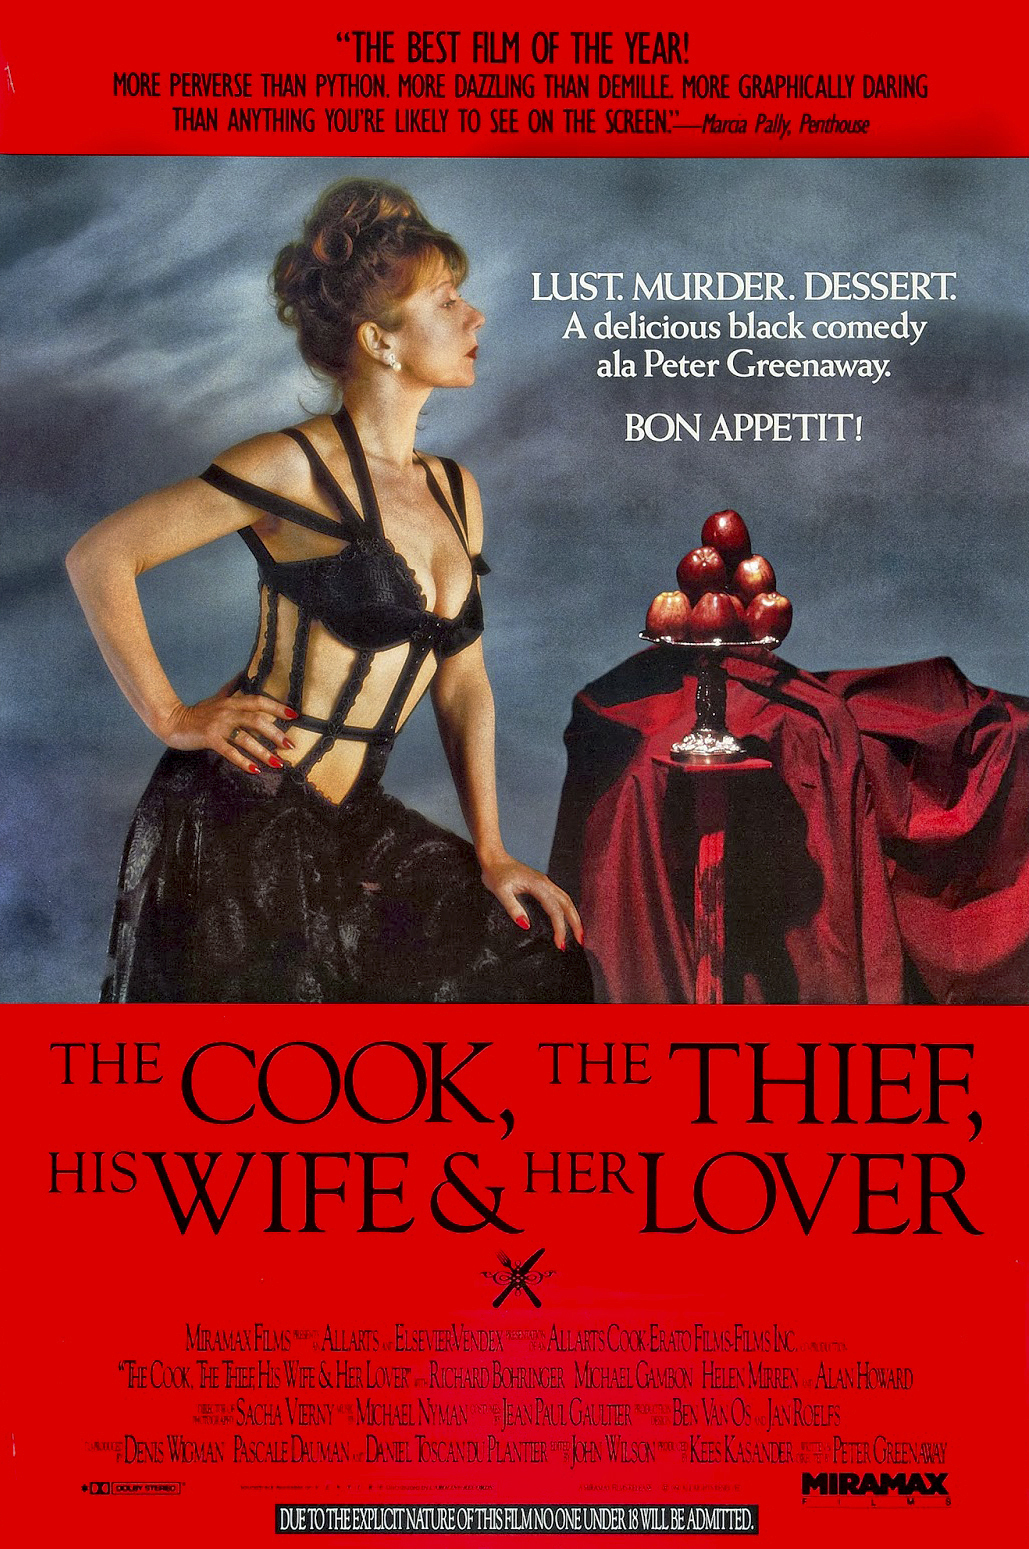 THE COOK, THE THIEF, HIS WIFE, AND HER LOVER - American Poster 1.png